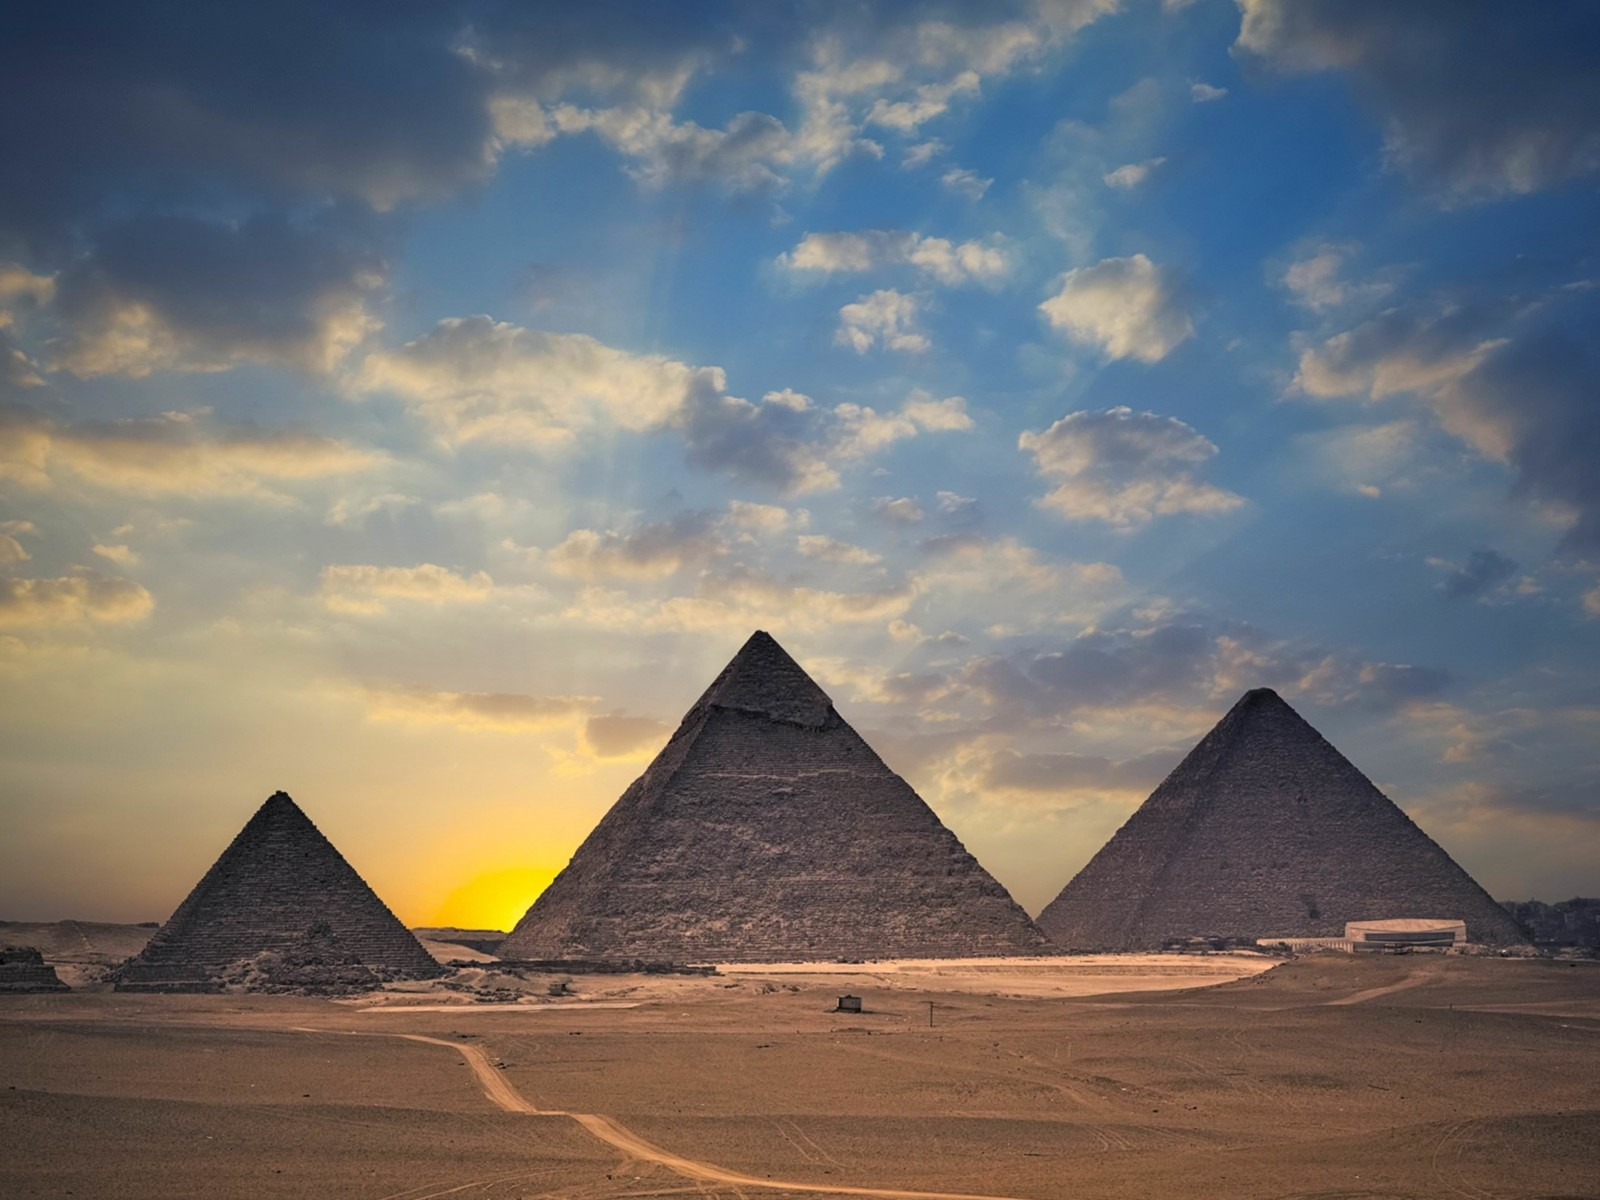 The Great Pyramids of Giza Wallpaper for Desktop 1600x1200